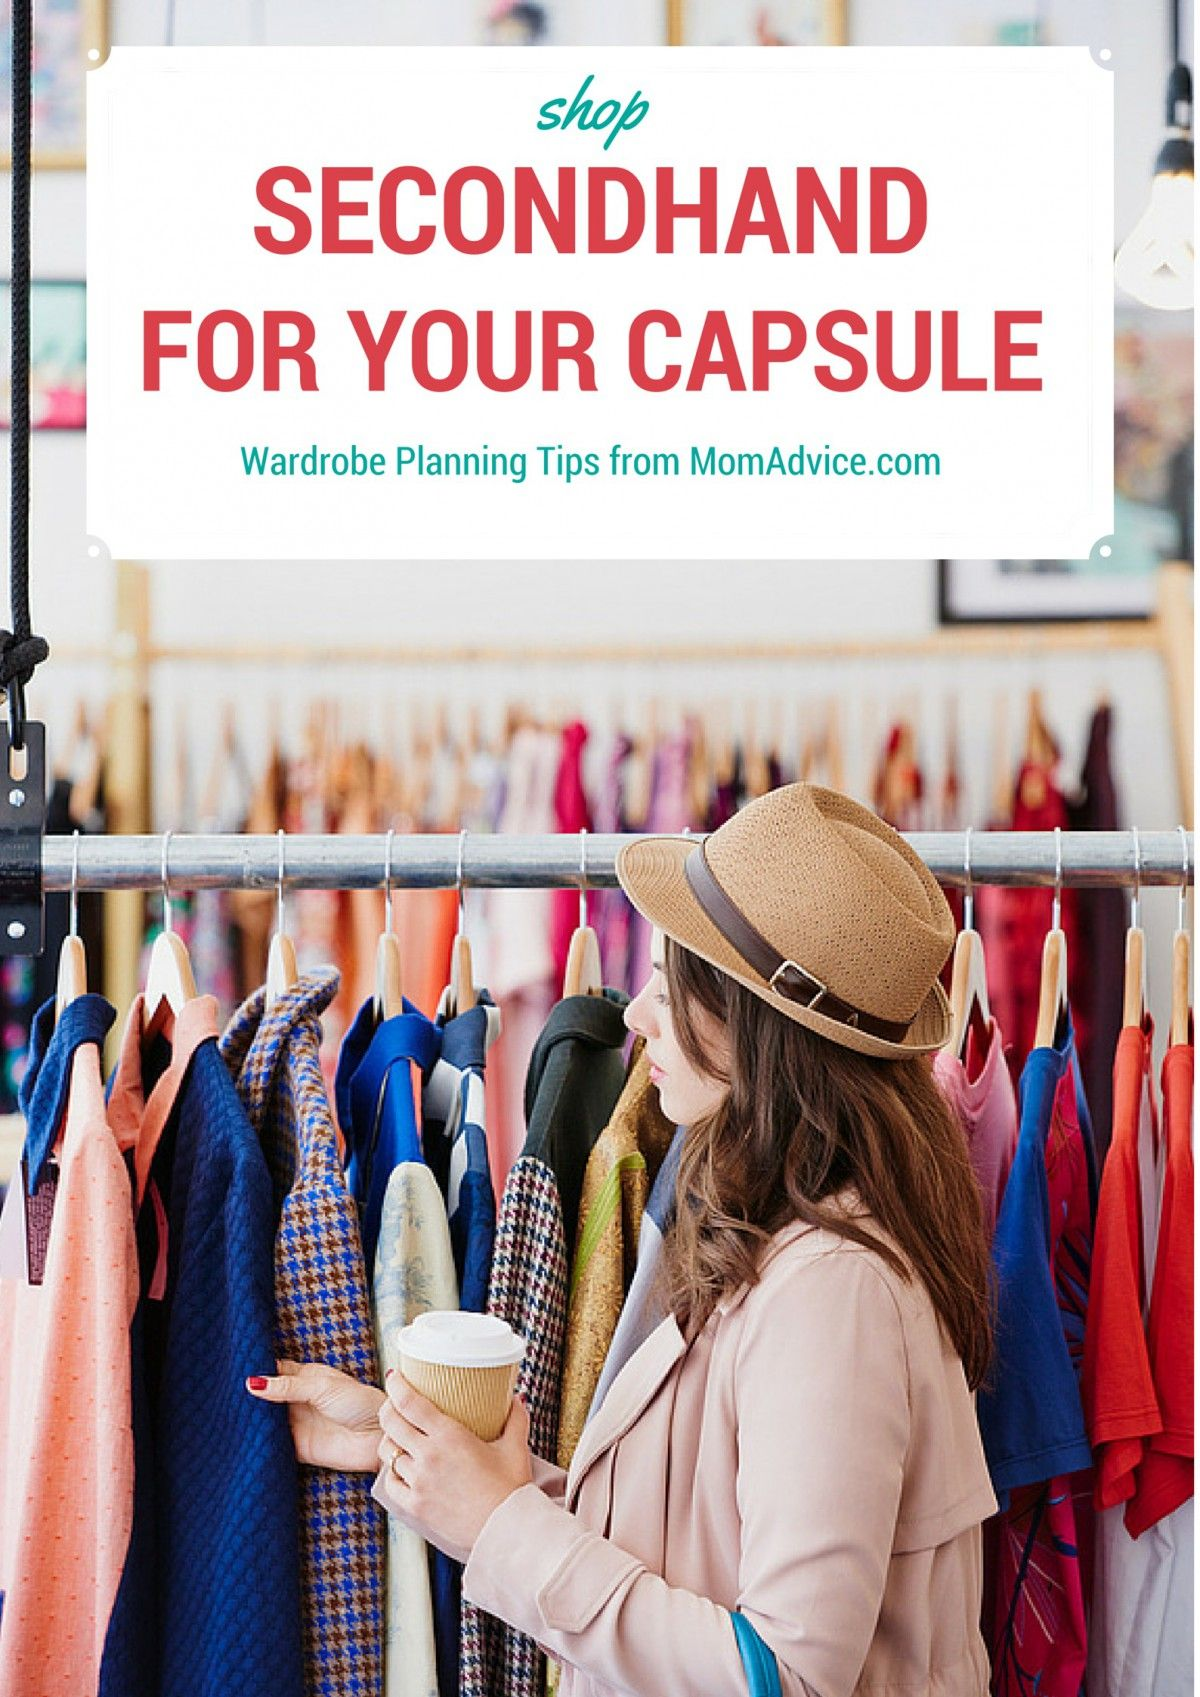 How To Shop Secondhand For Your Fashion Capsule Wardrobe